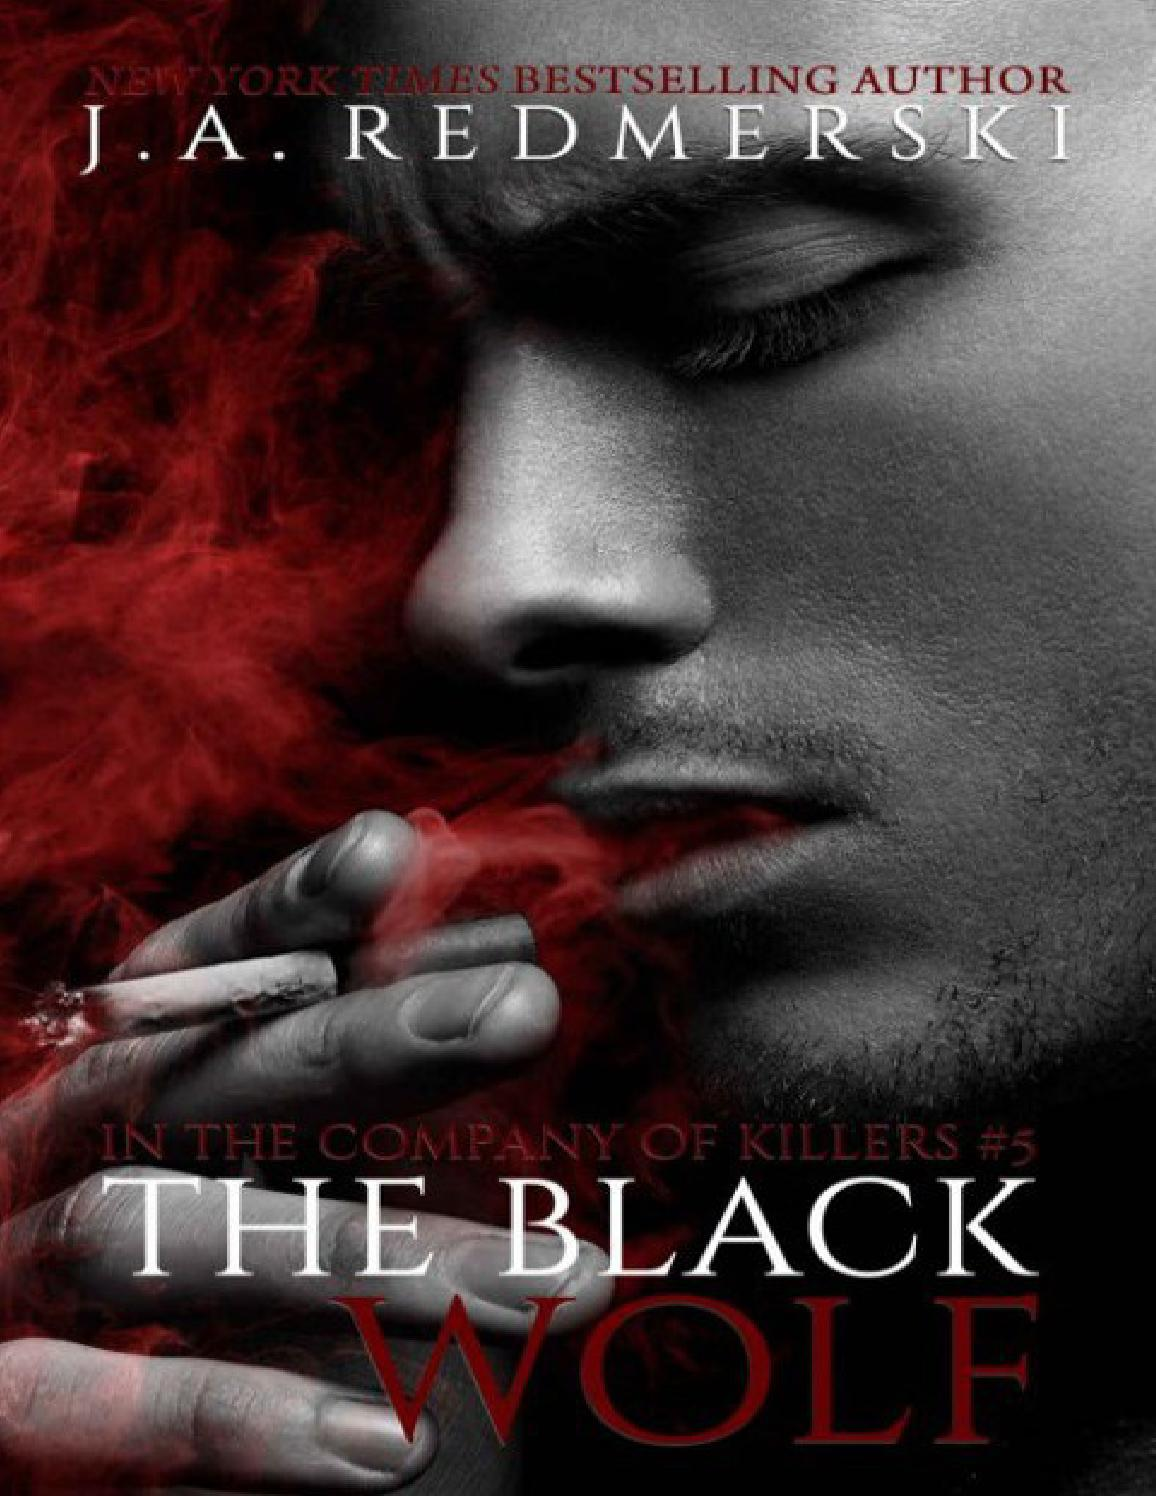 The Black Wolf - JA Redmerski (In The Company Of Killers #5)